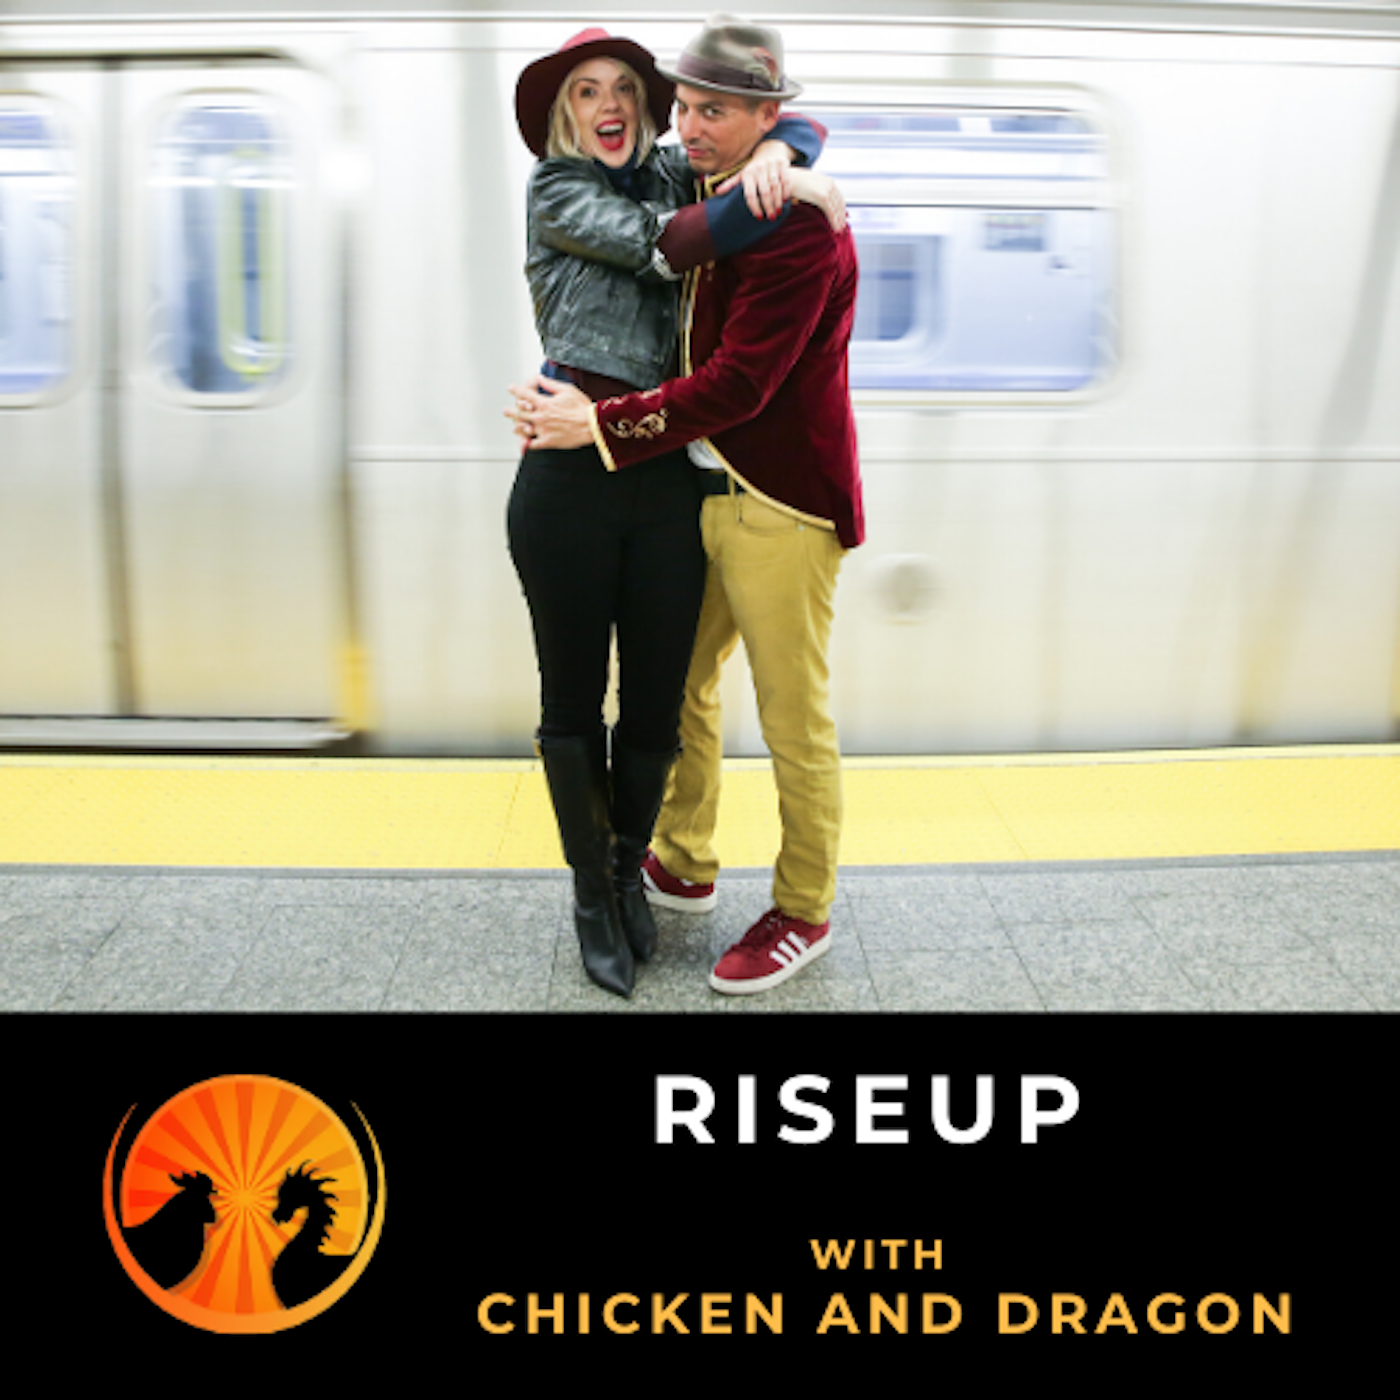 RiseUp with Chicken and Dragon